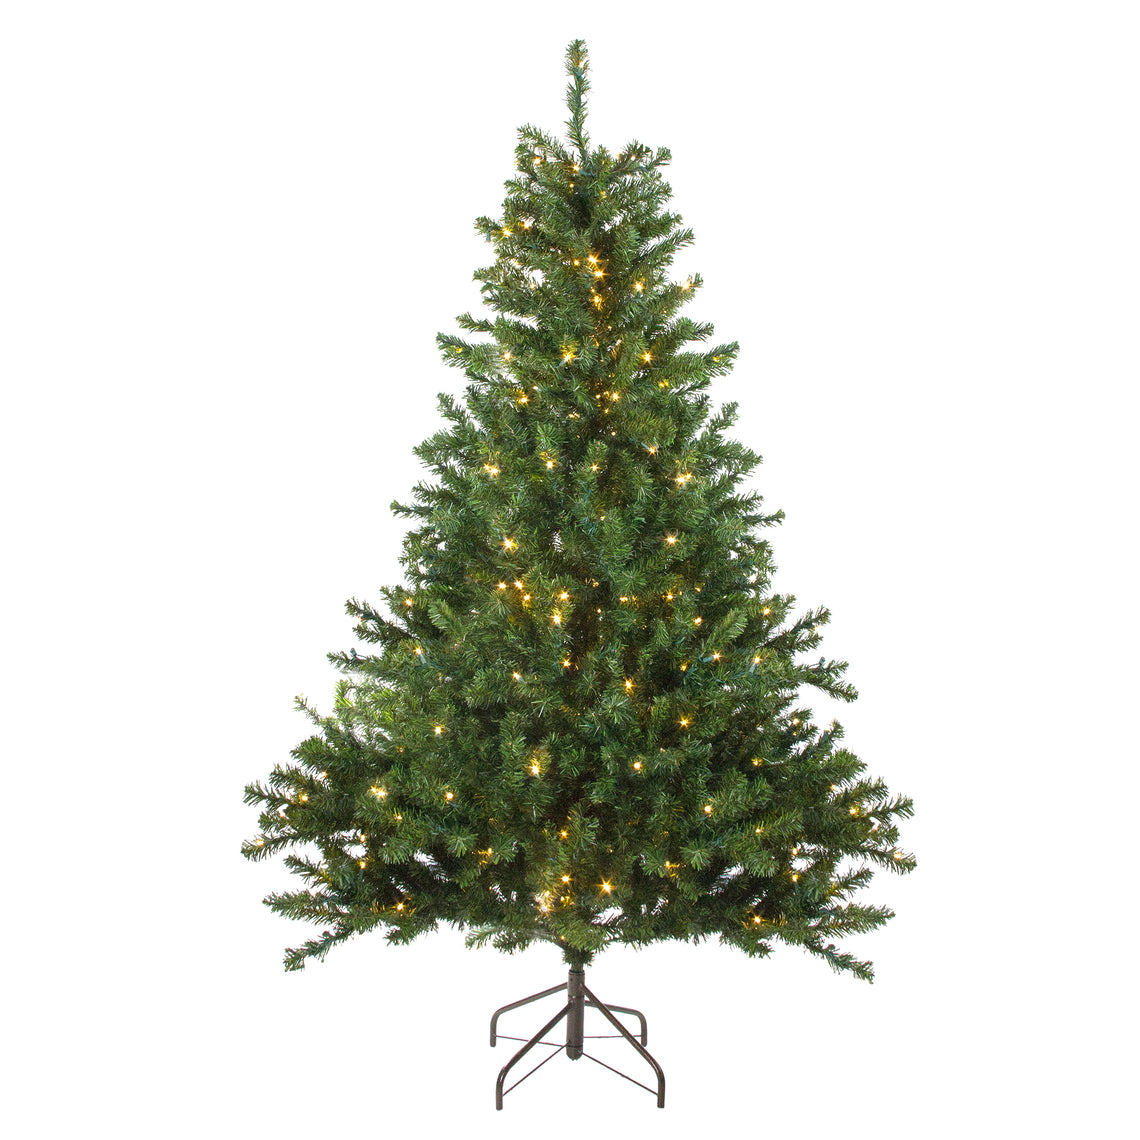 5' Pre-Lit Canadian Pine Artificial Christmas Tree - Candlelight LED Lights